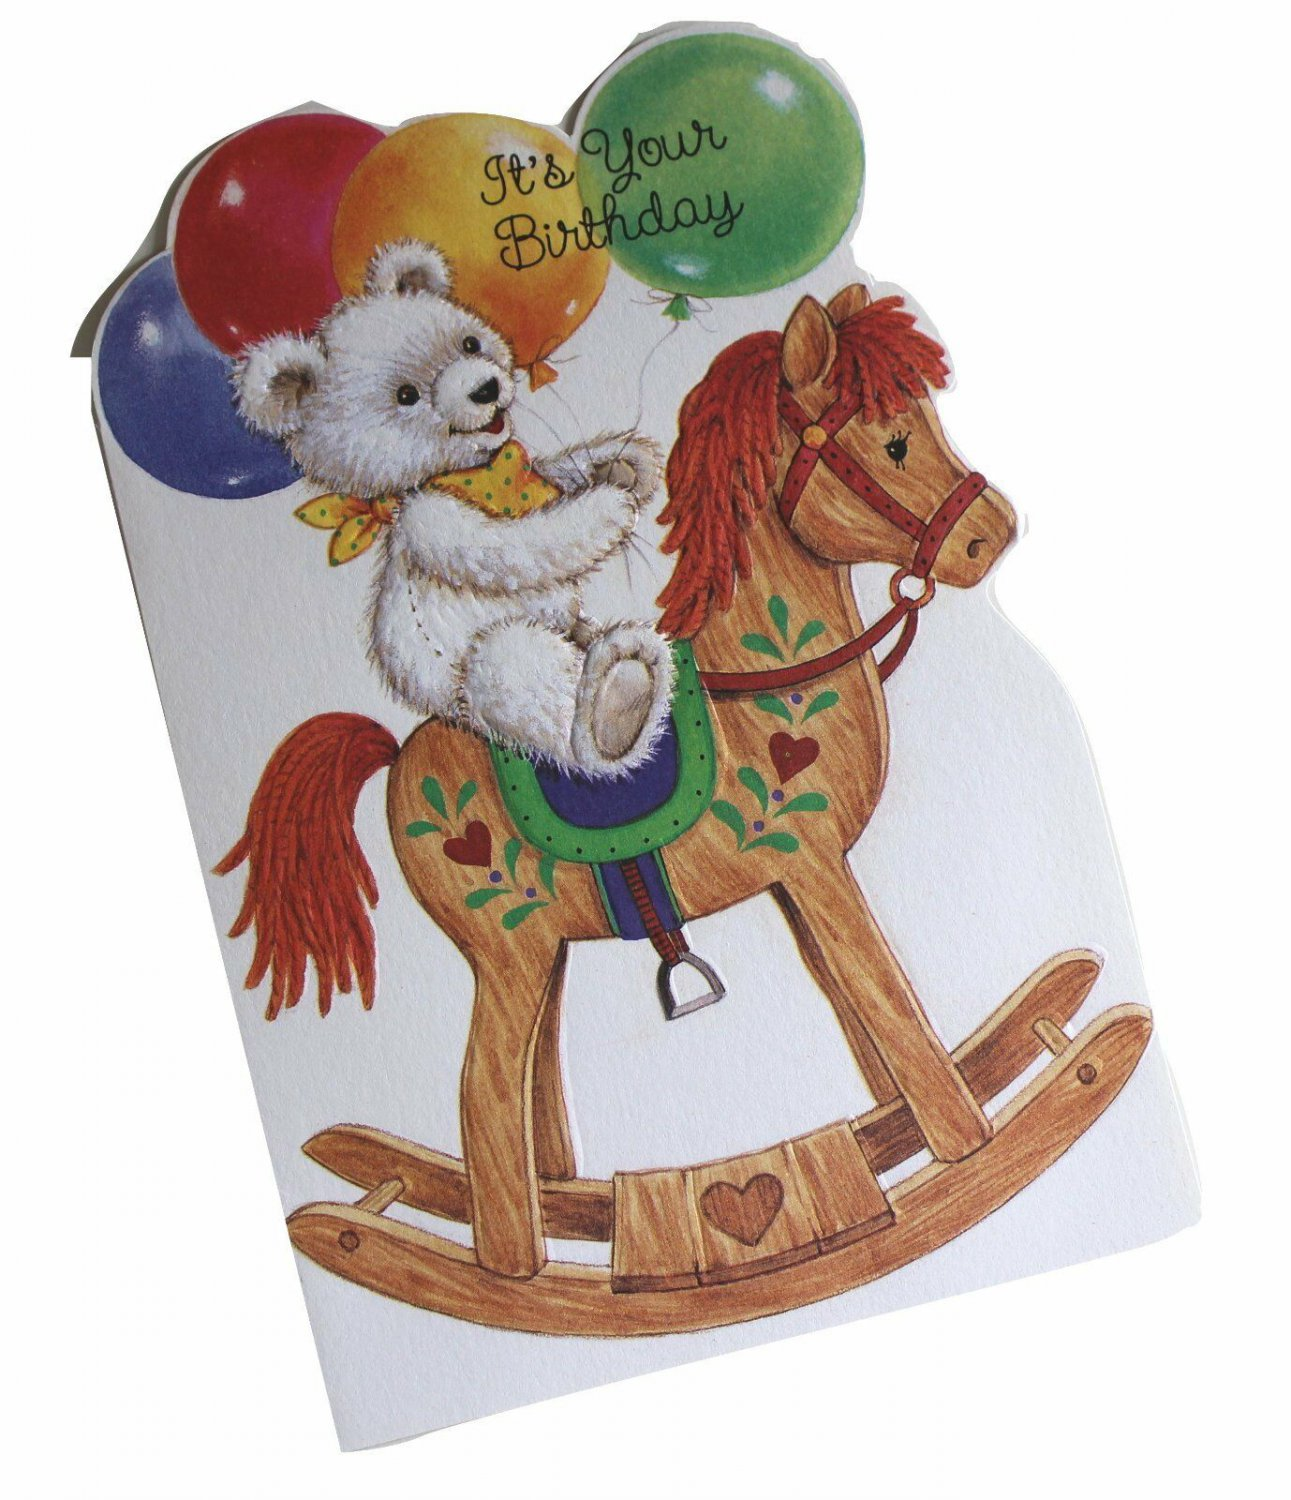 Gallant Birthday Greeting Card w Envelope Bear Rocking Horse Recycled